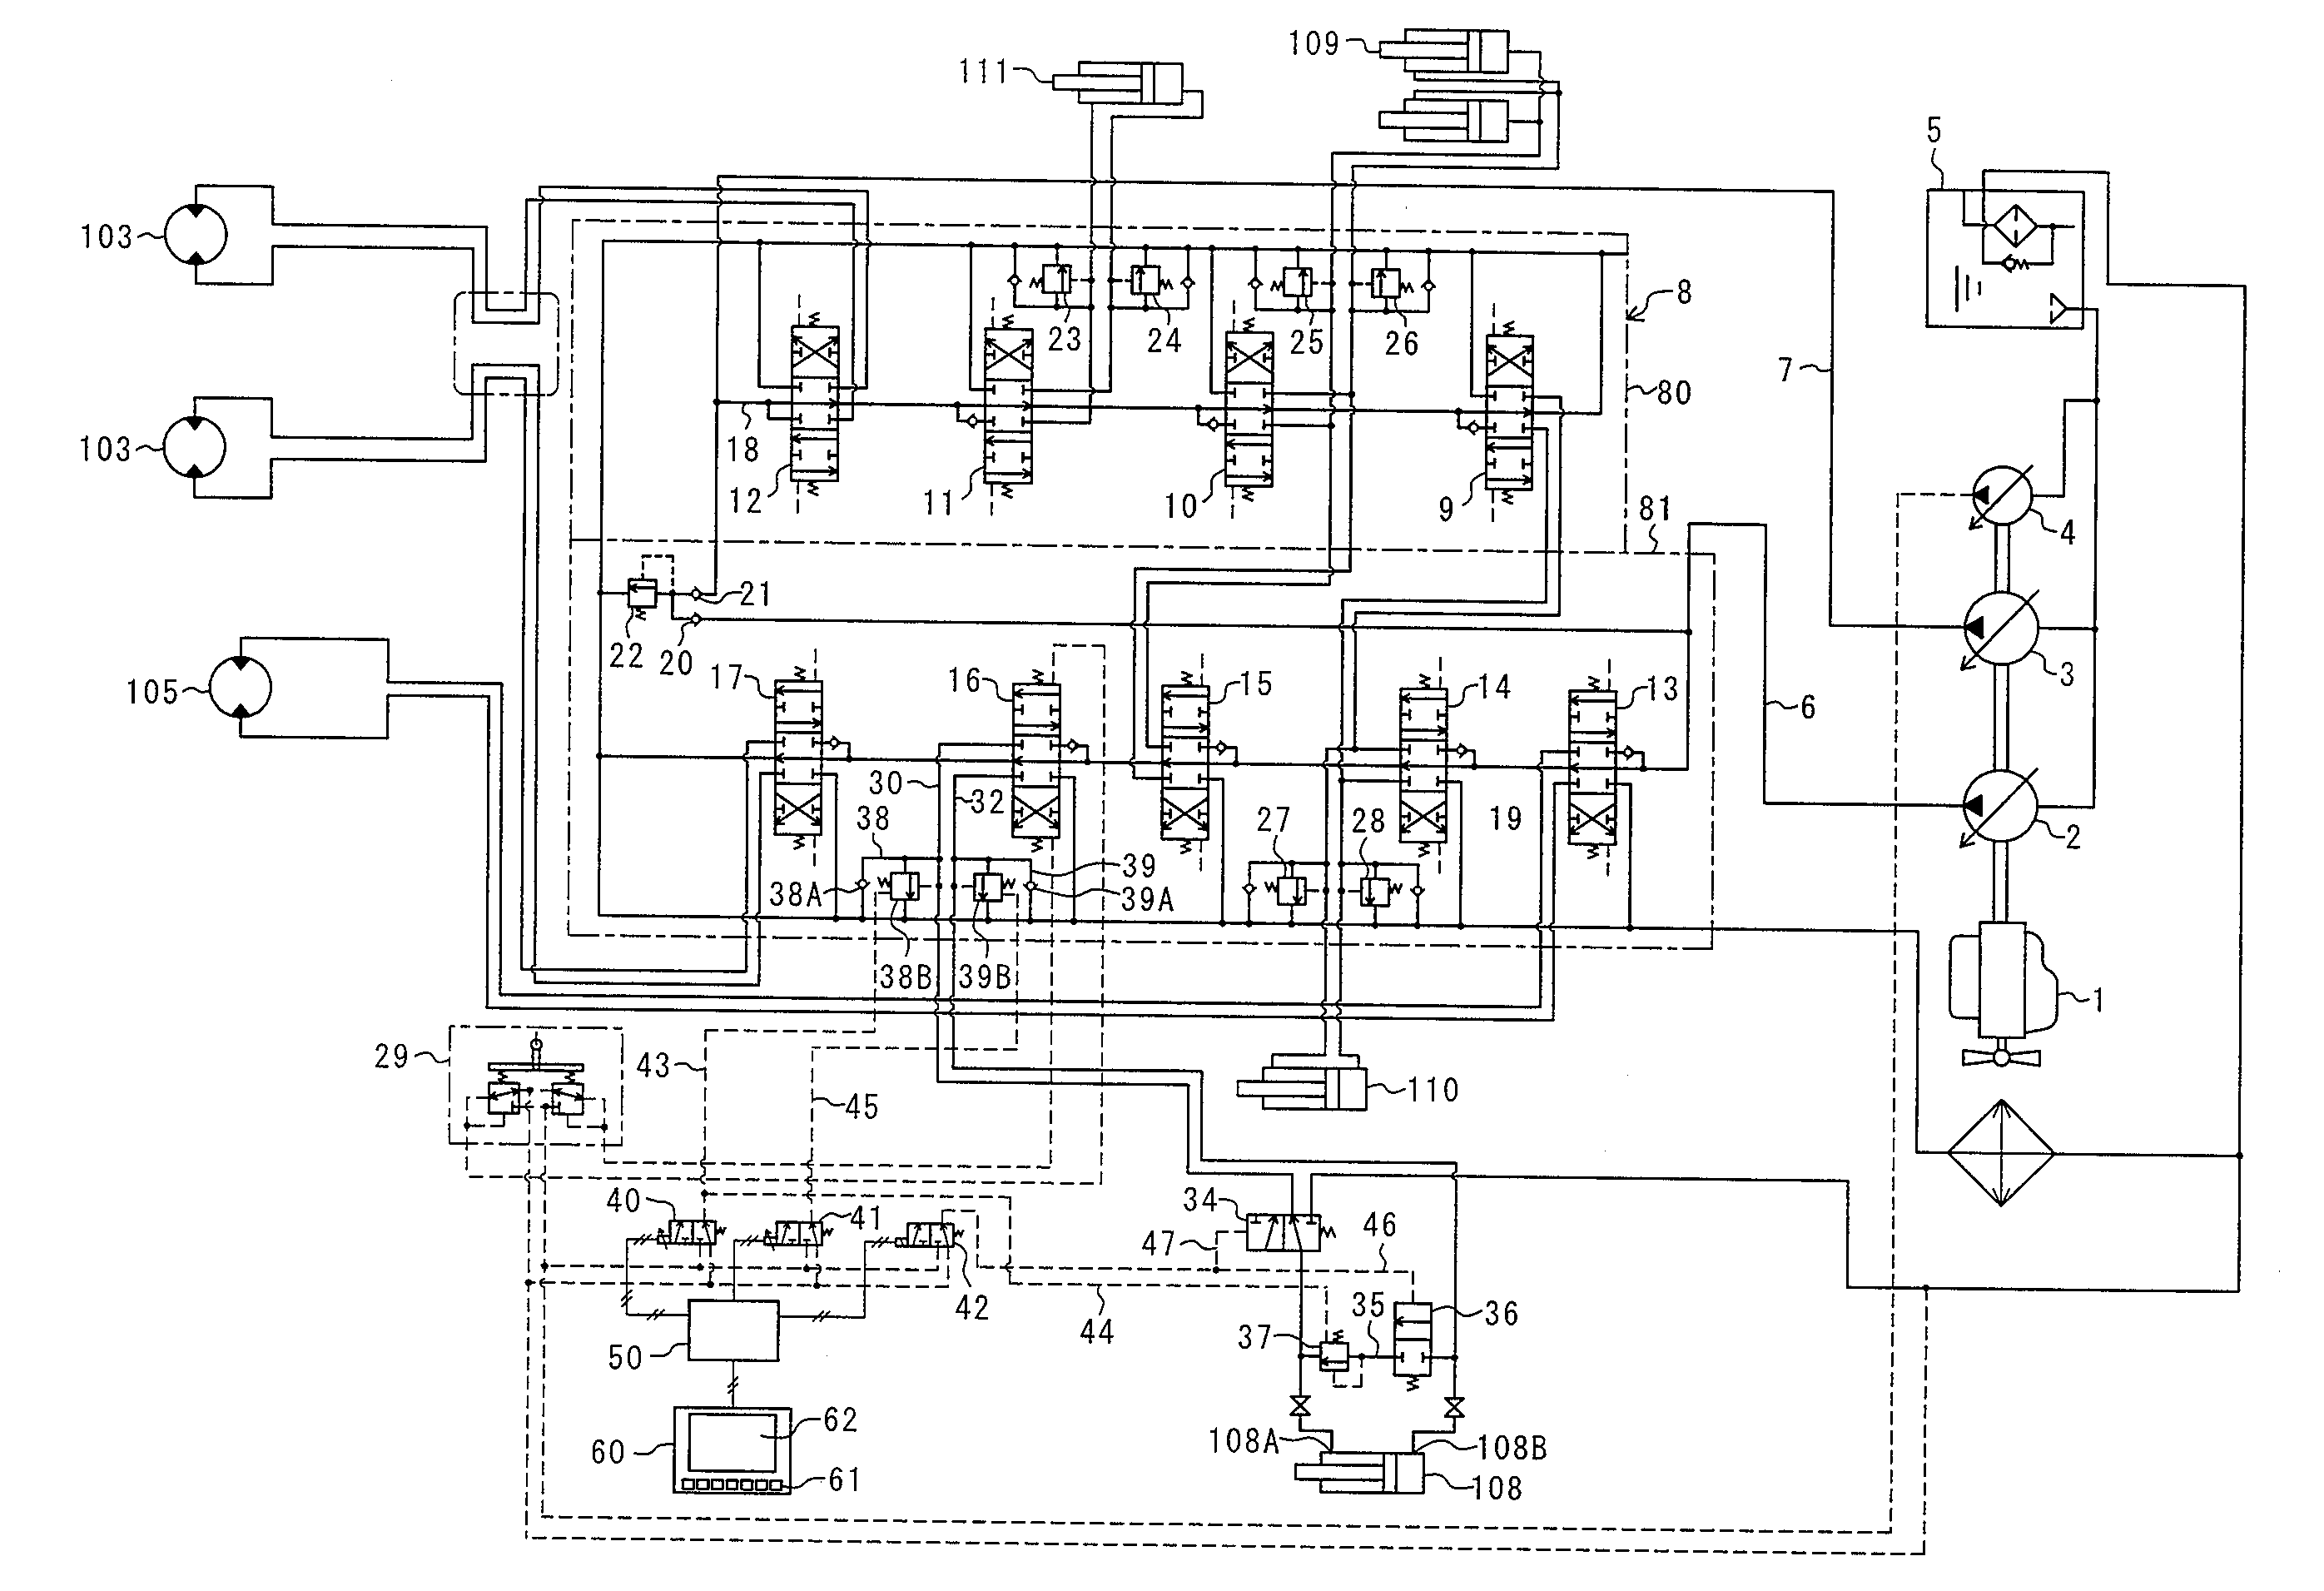 Wiring Diagrams For Kobelco 150 Wire Center Arduinor39like Pro Mini Pinout Diagram By Adlerweb On Deviantart Collection Of U2022 Rh Wiringbase Today Hydraulic Circuit